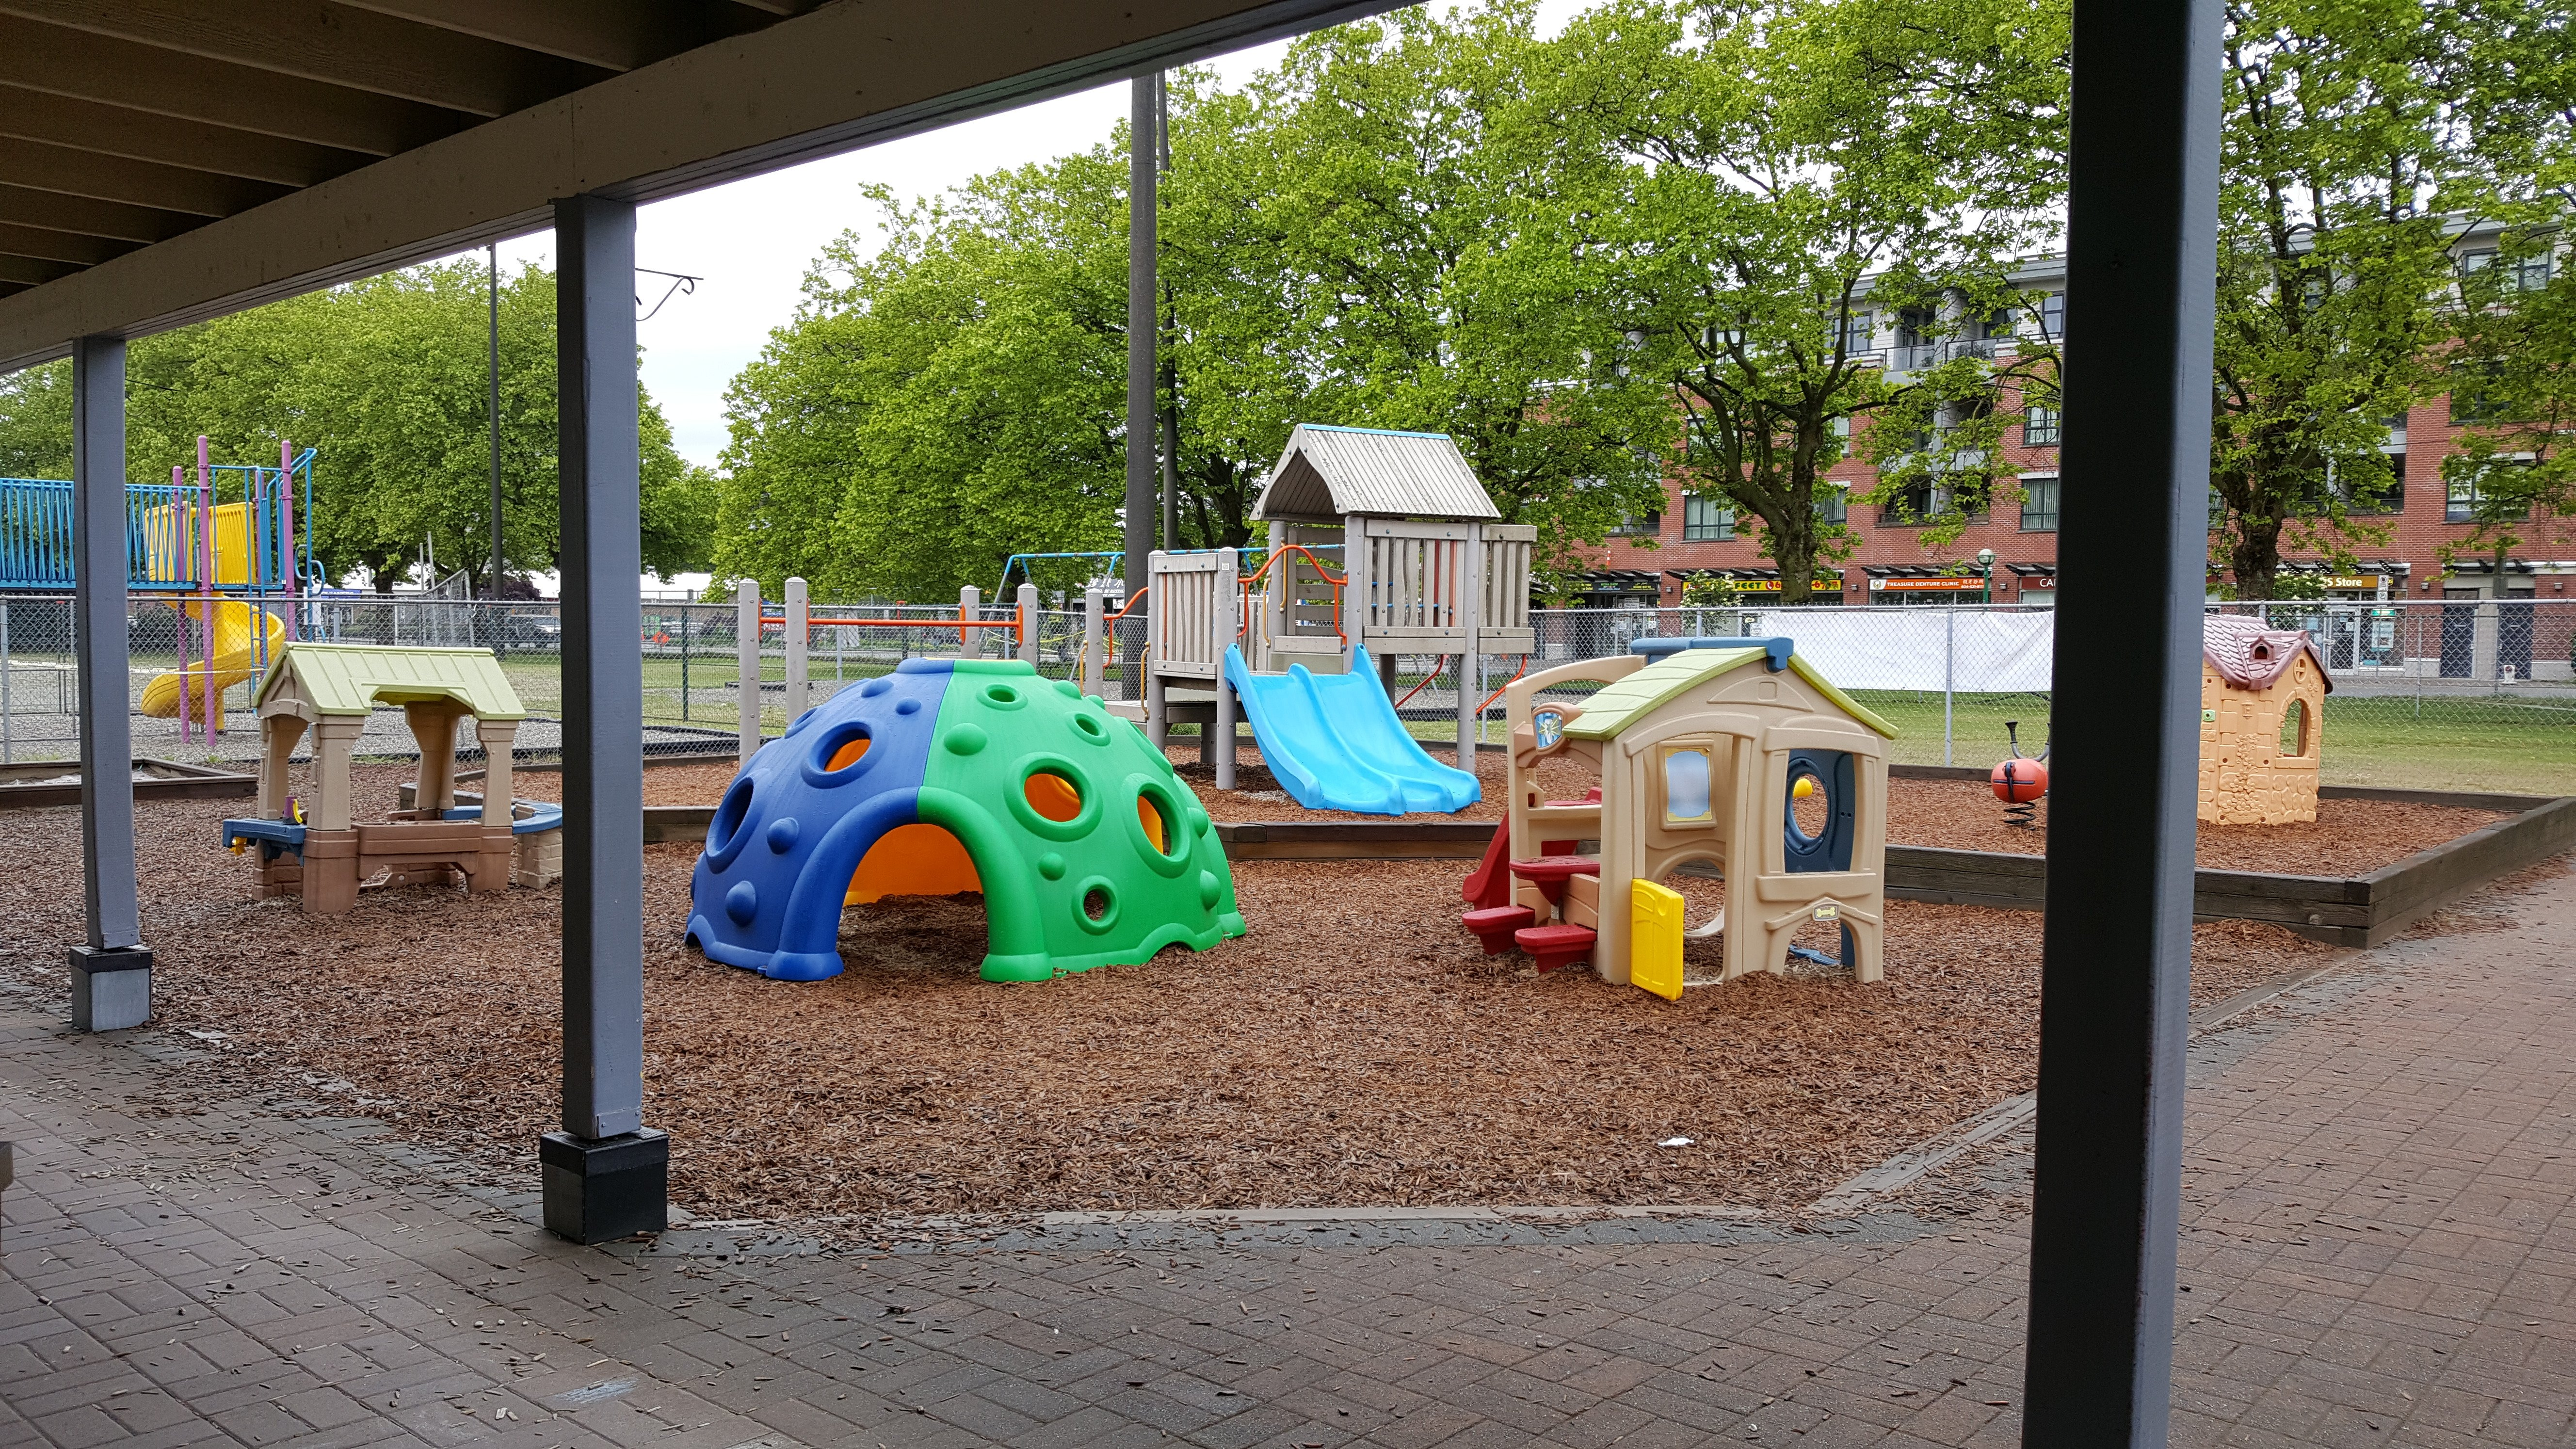 Playground for 3 to 5 years old